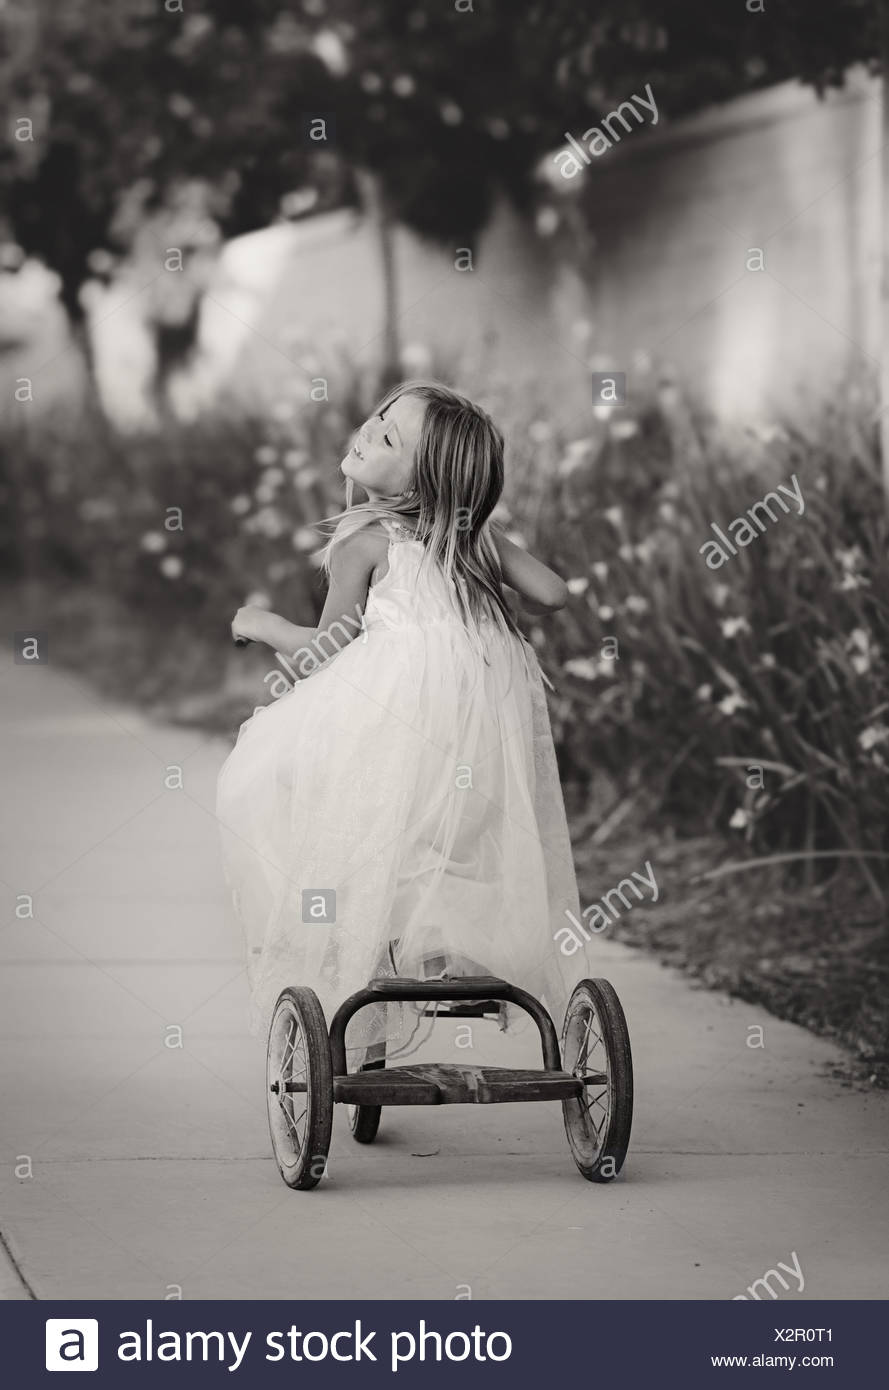 Rear view of a girl on a bicycle - Stock Image